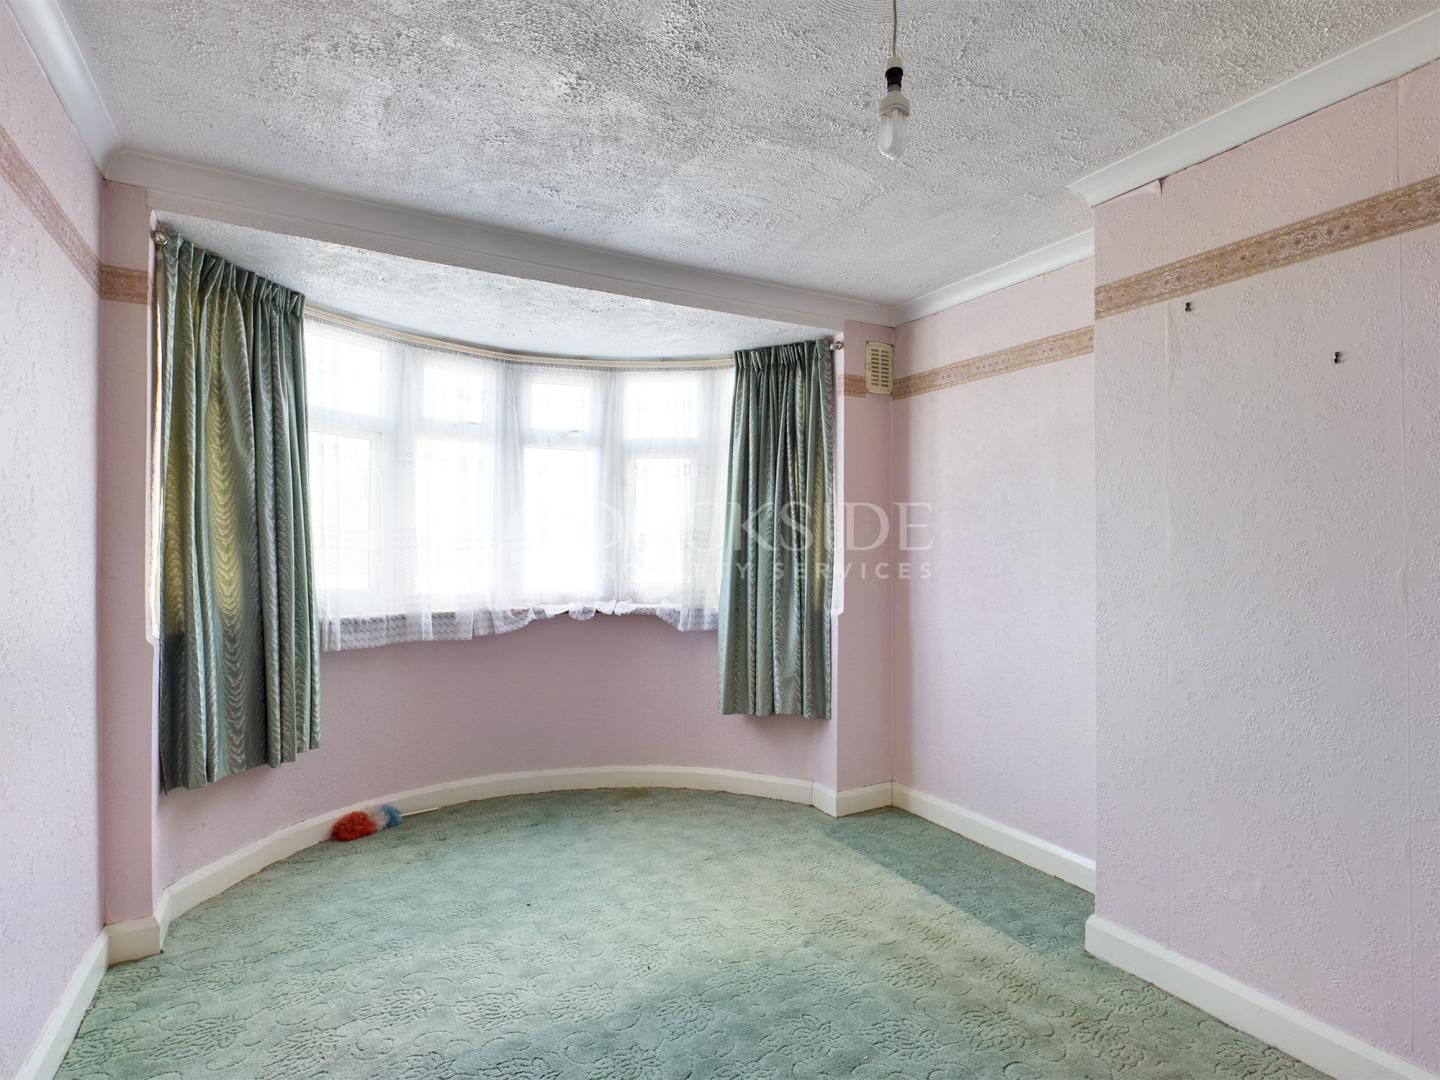 3 bed house for sale in Shottenden Road  - Property Image 5